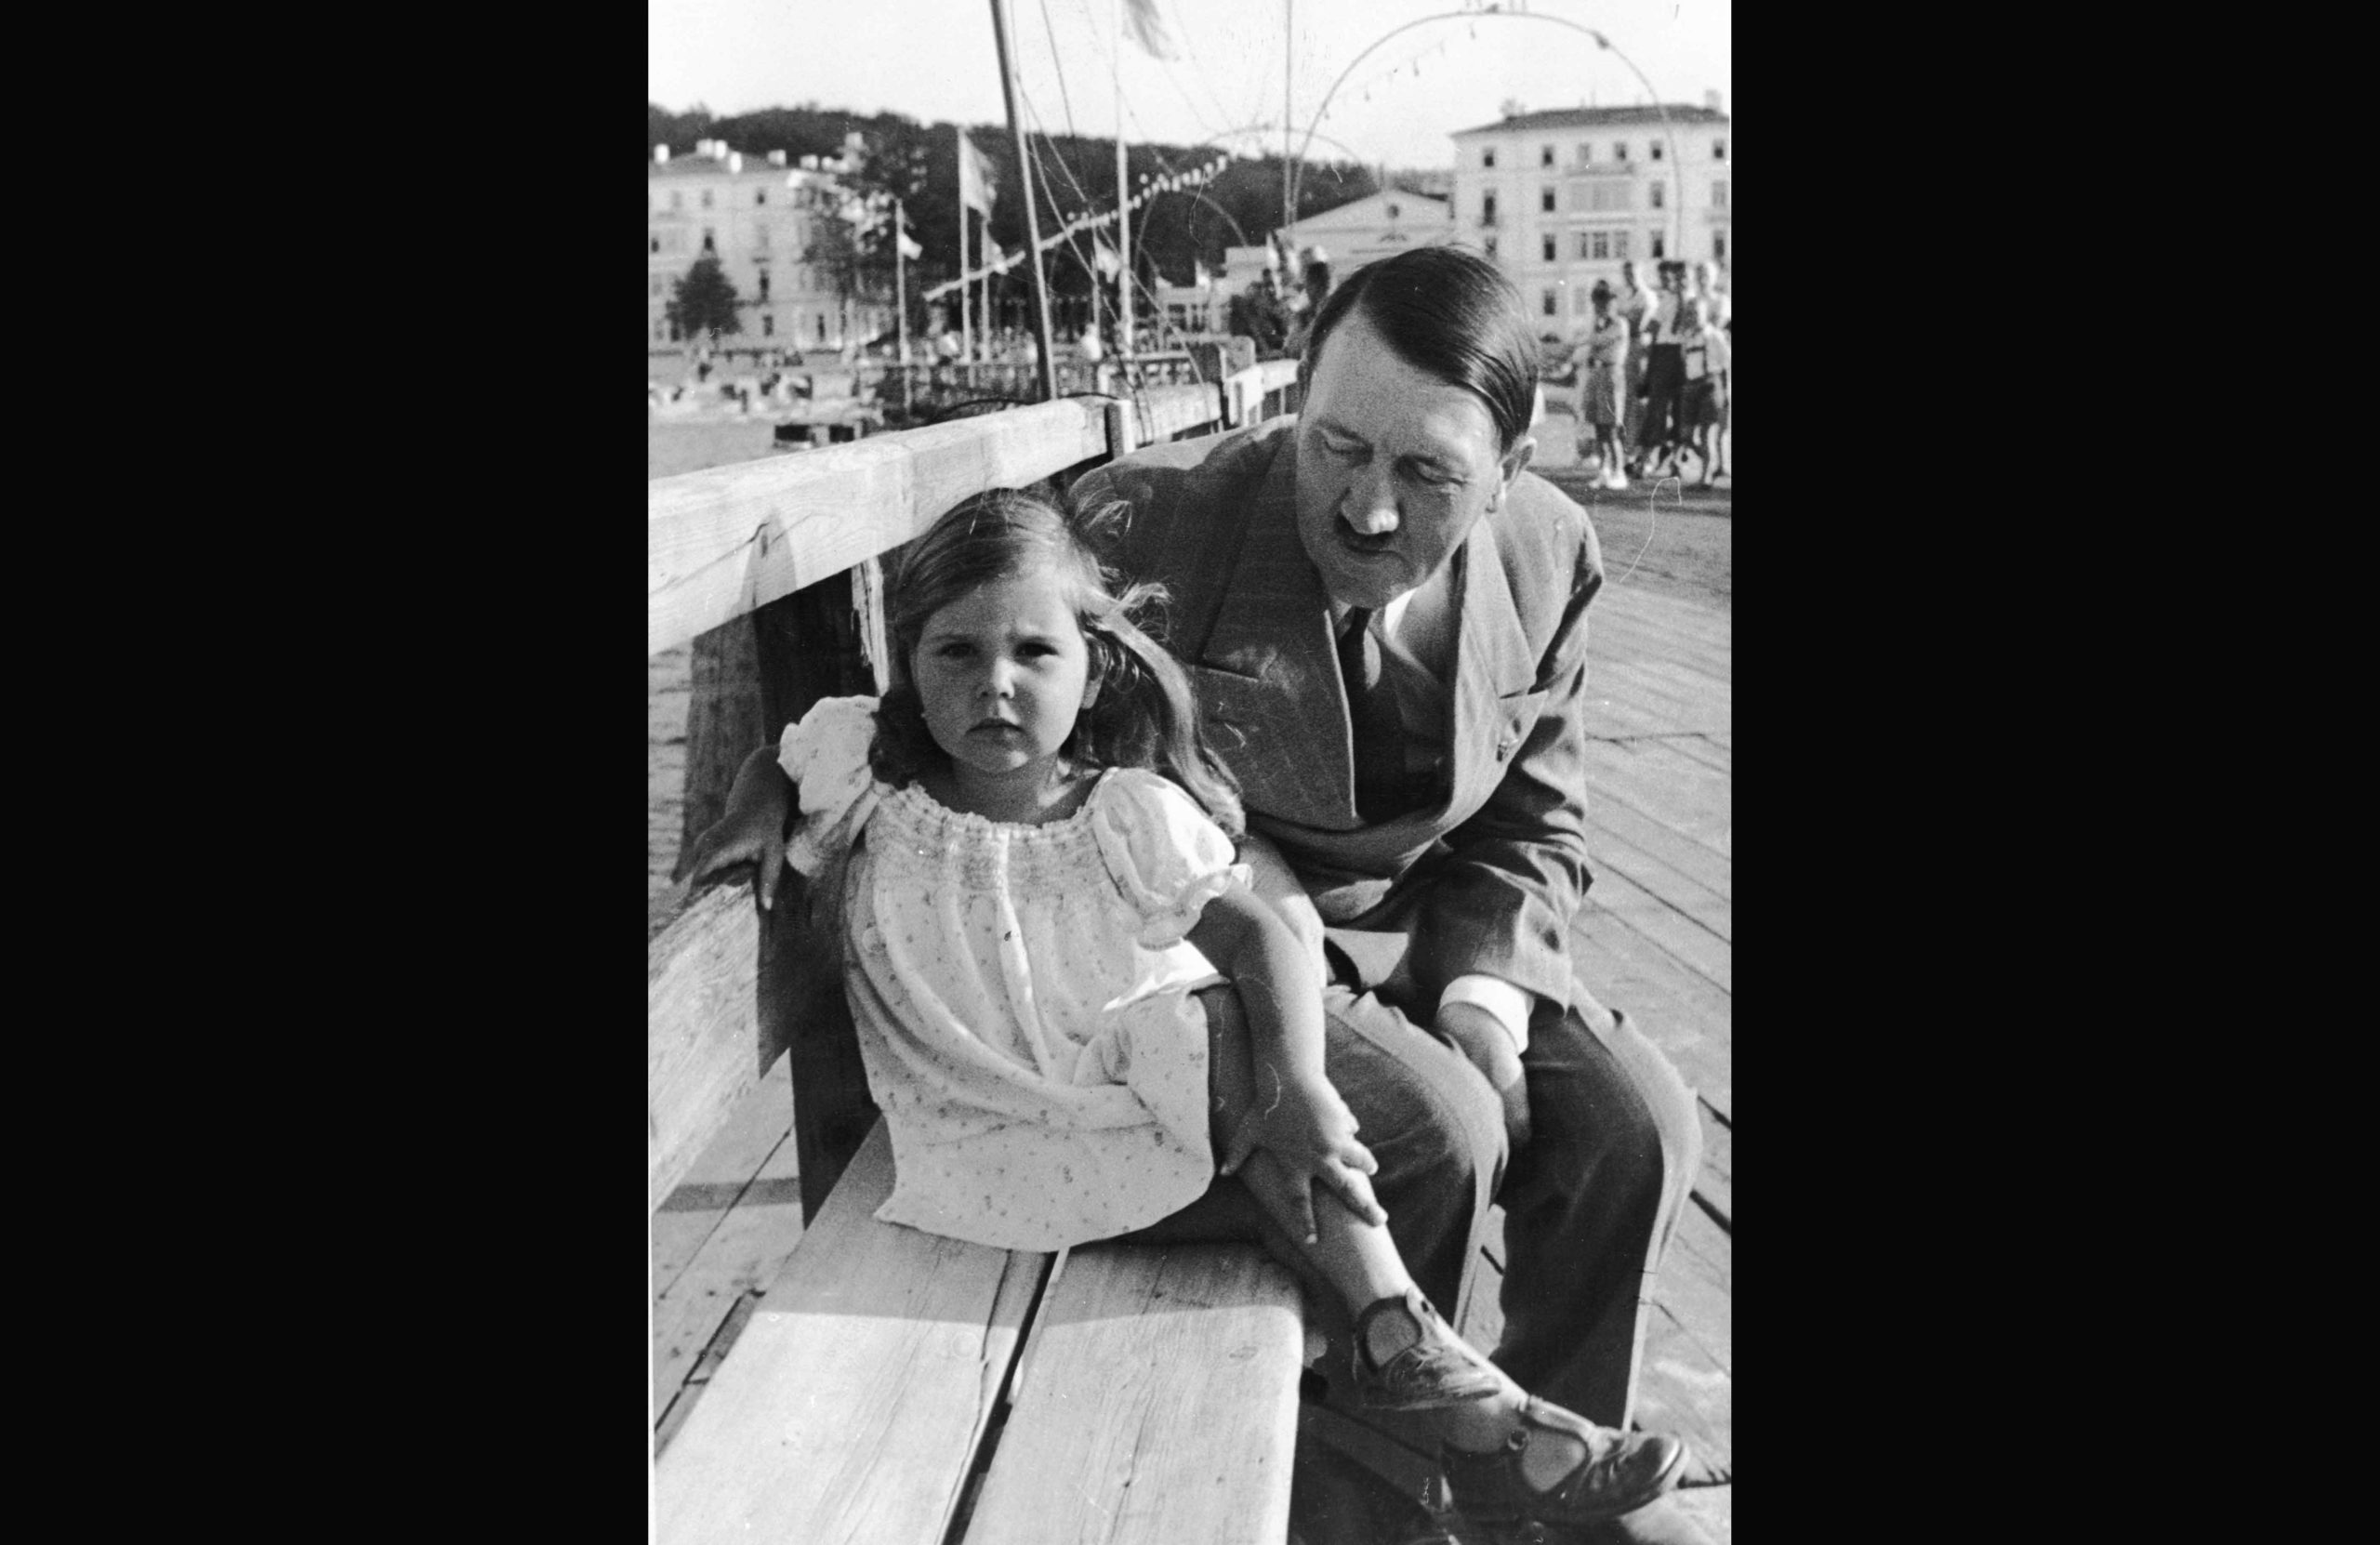 Hitler, revealed, in the presence of a child